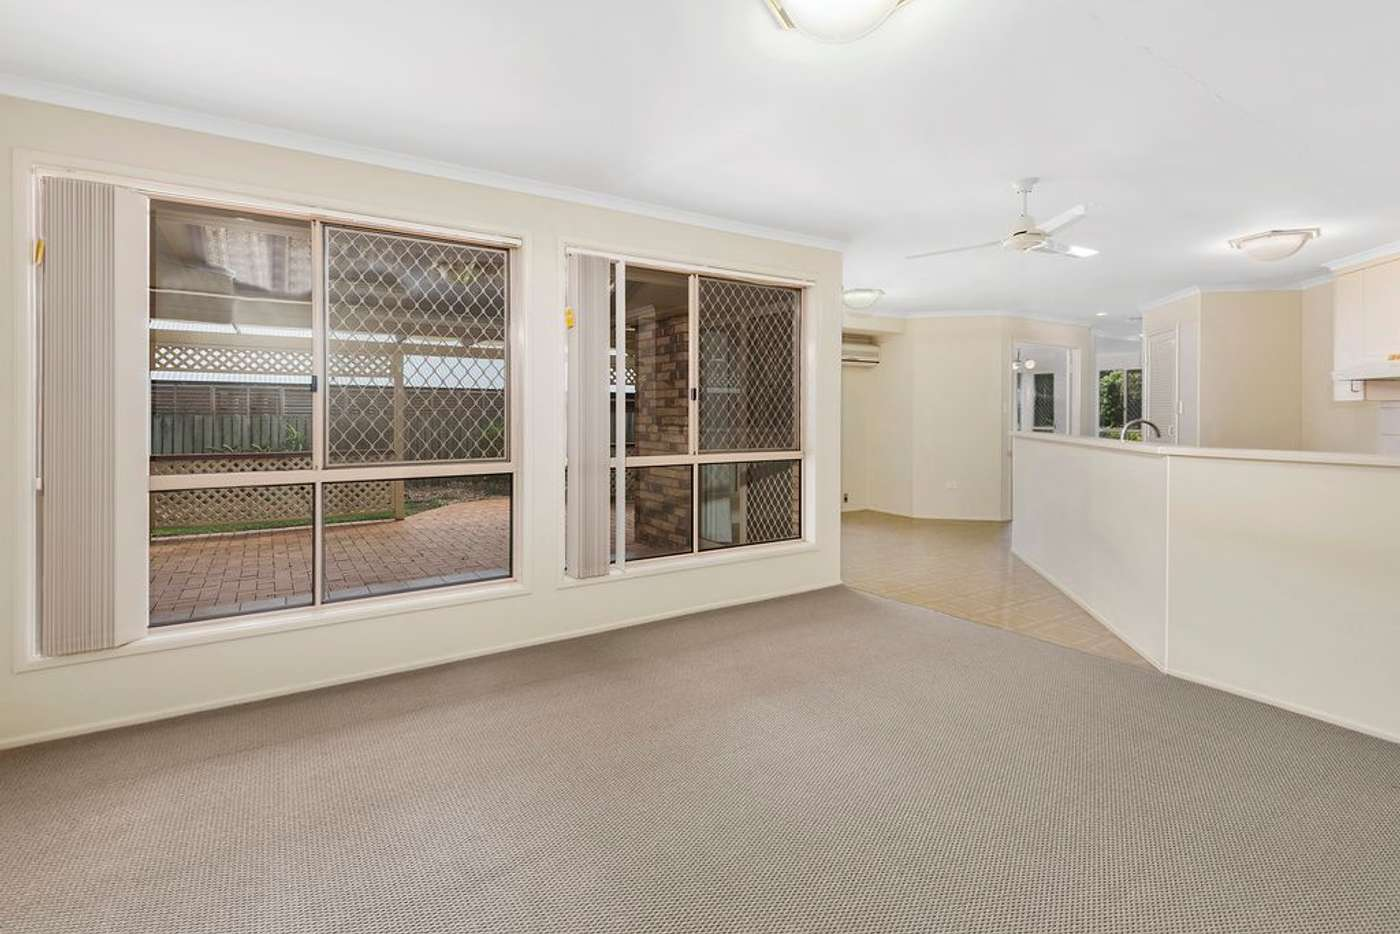 Fifth view of Homely house listing, 7 Falconer Court, Rangeville QLD 4350